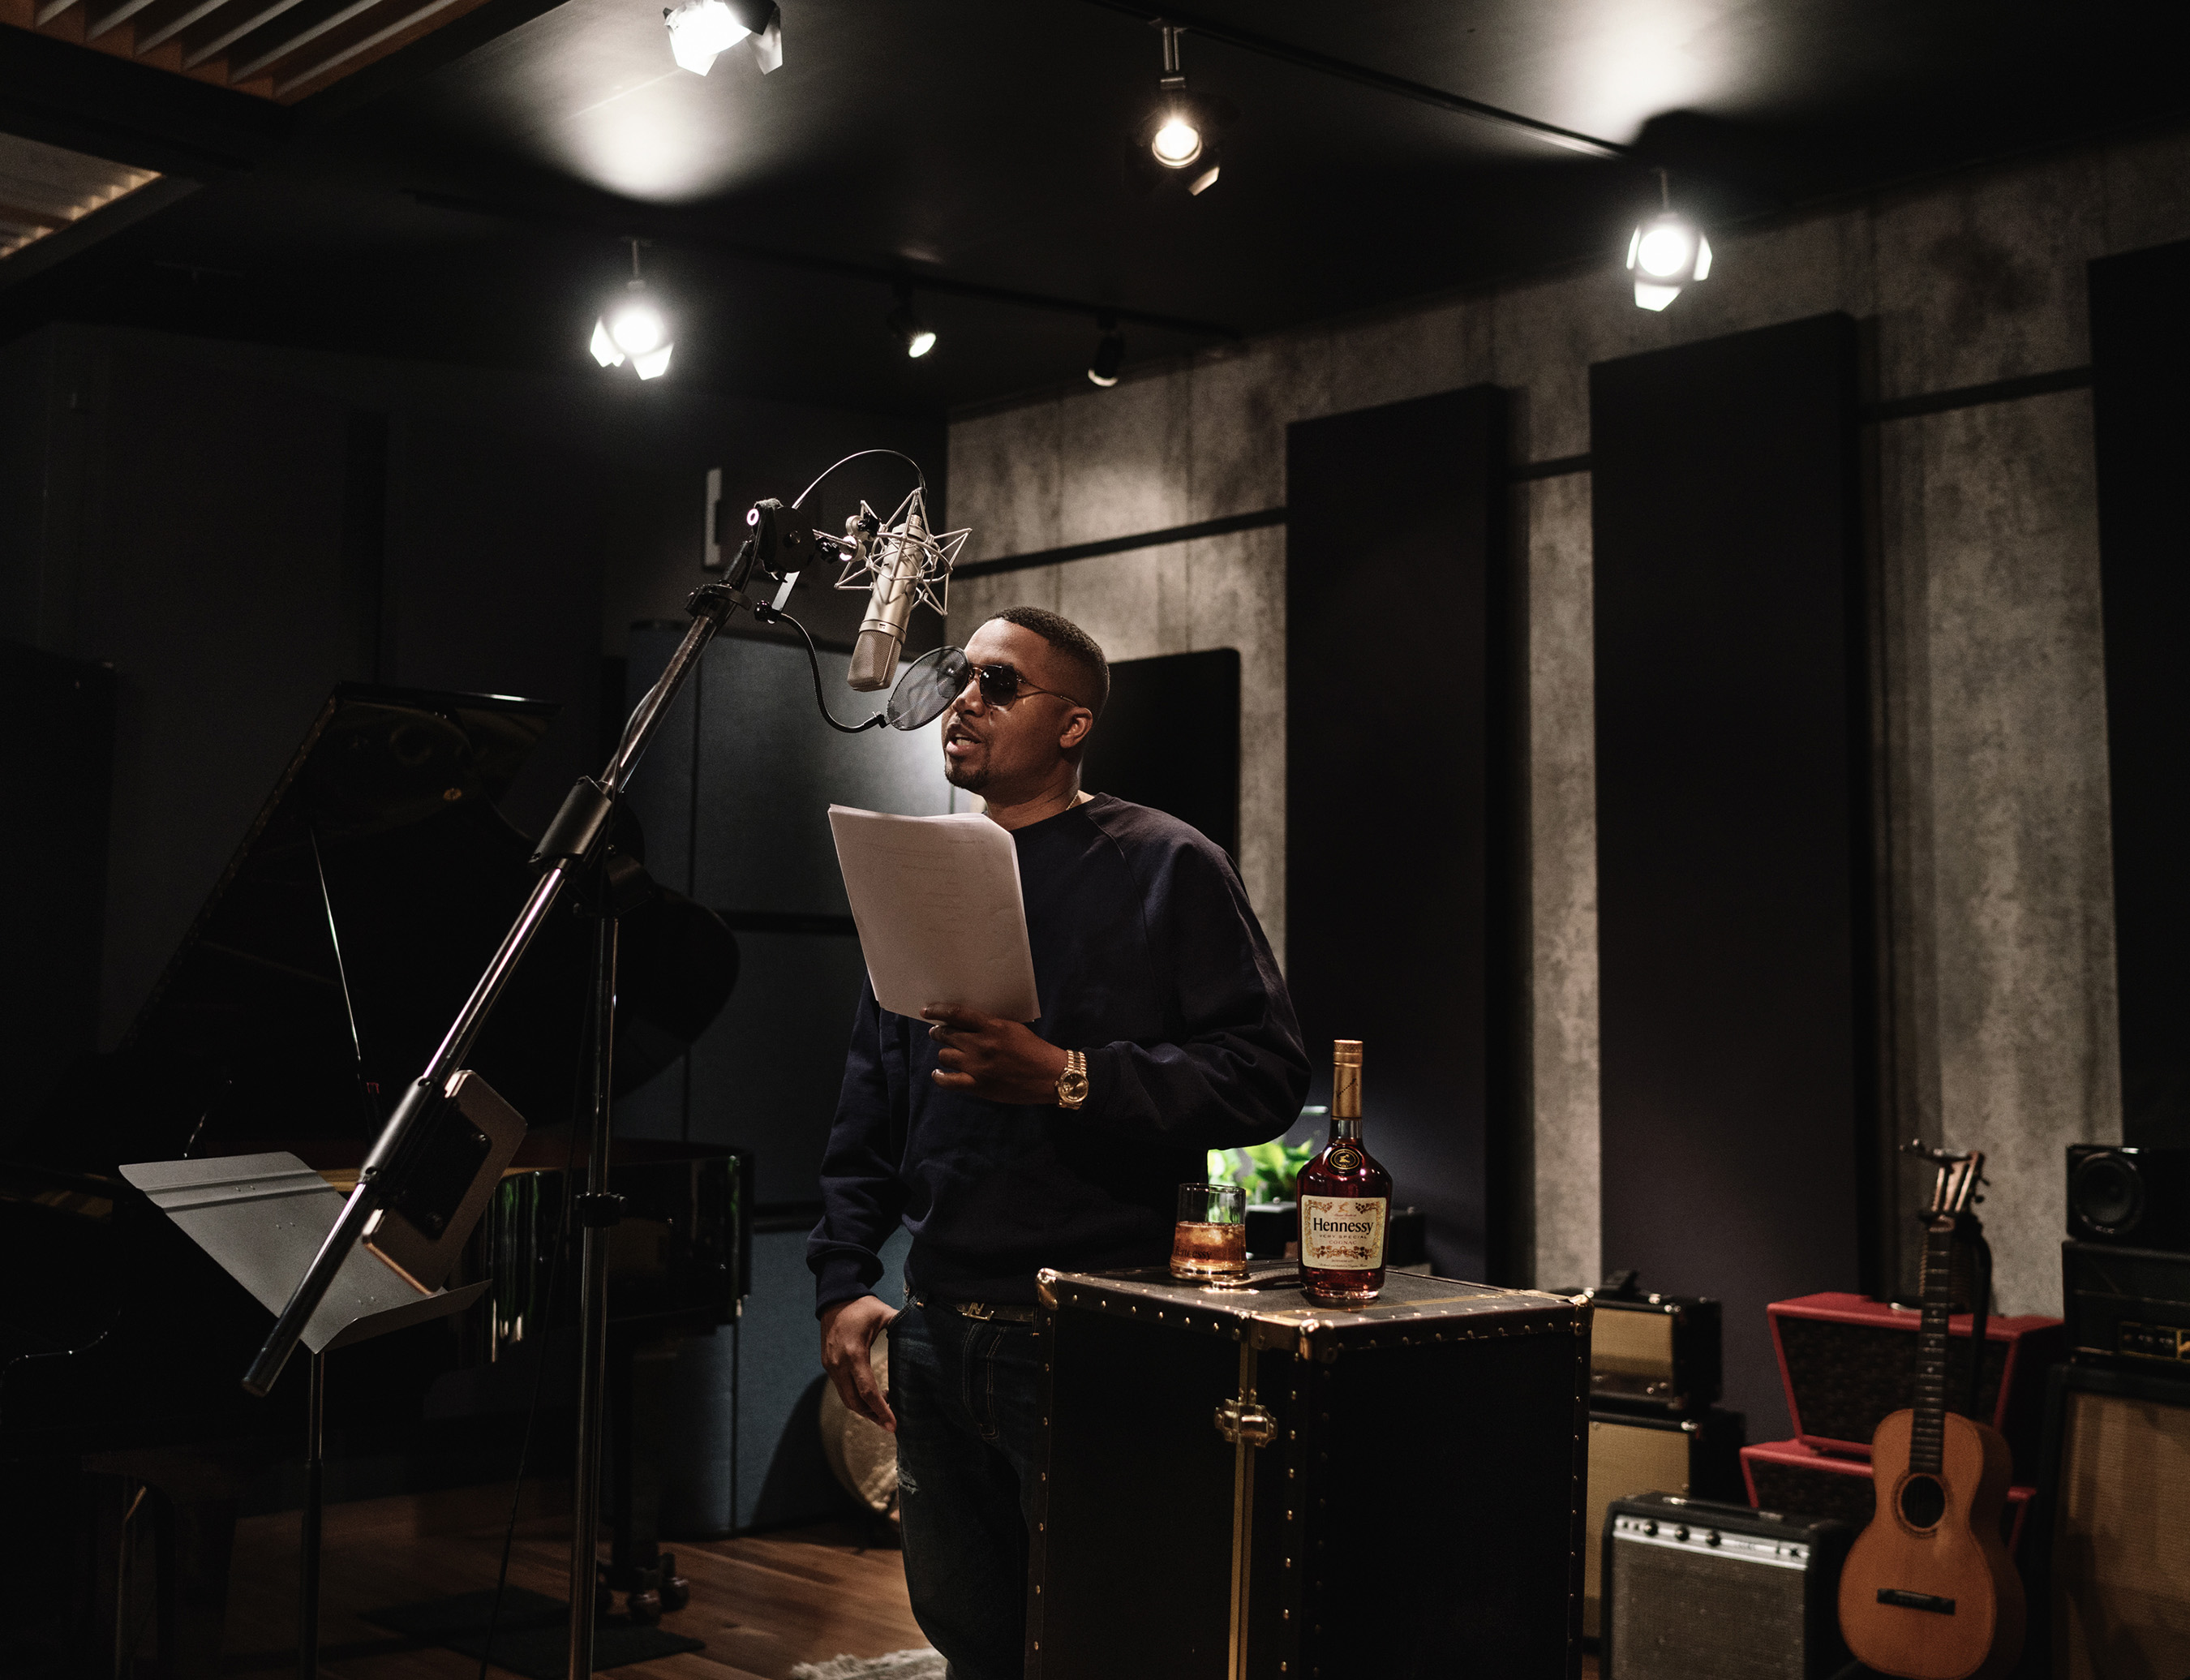 """A behind-the-scenes look at musician and entrepreneur Nas, lending his voice to Taylor in Hennessy's new """"Wild Rabbit"""" ad creative."""